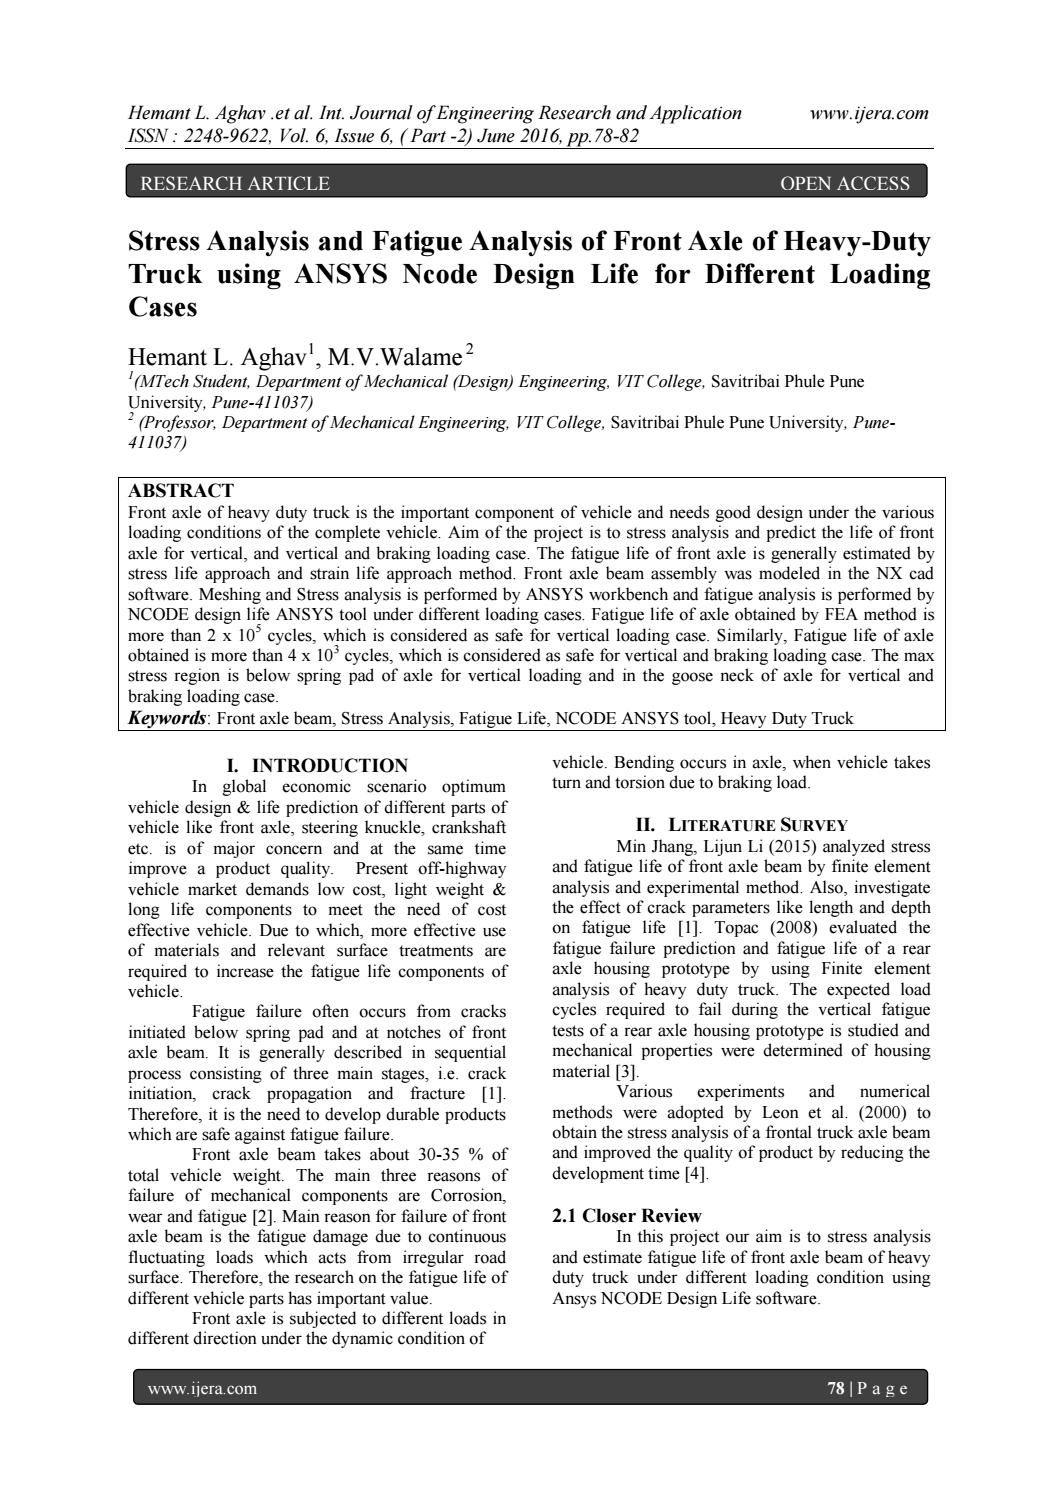 Stress Analysis and Fatigue Analysis of Front Axle of Heavy-Duty